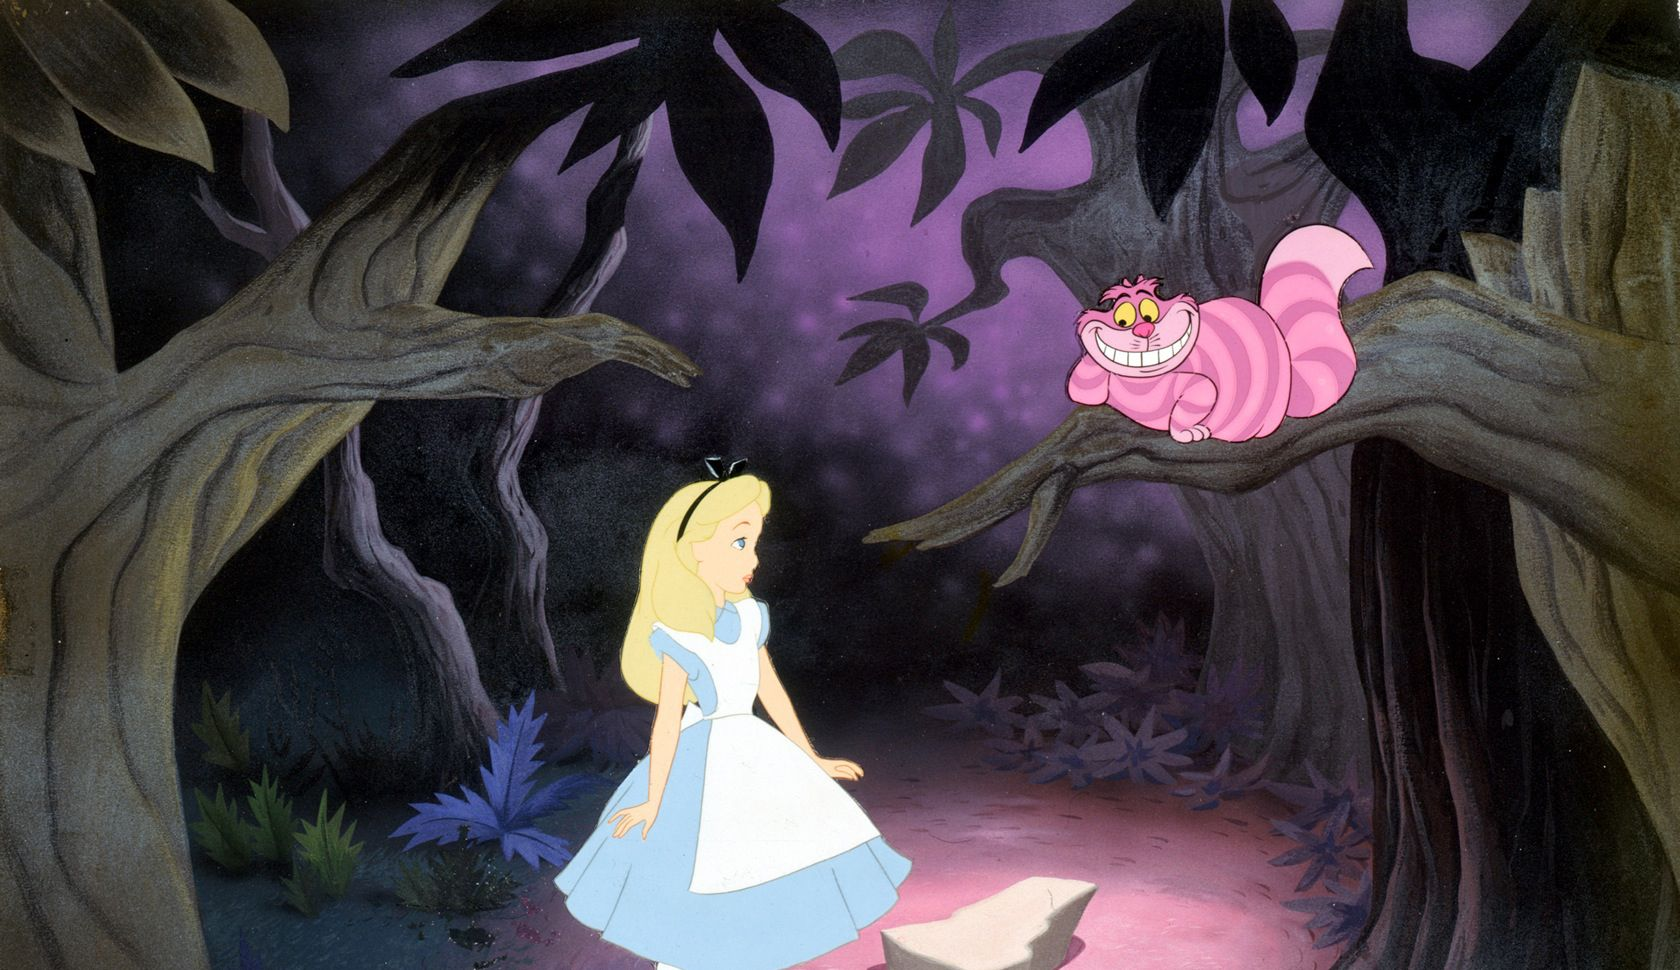 An image from Alice in Wonderland